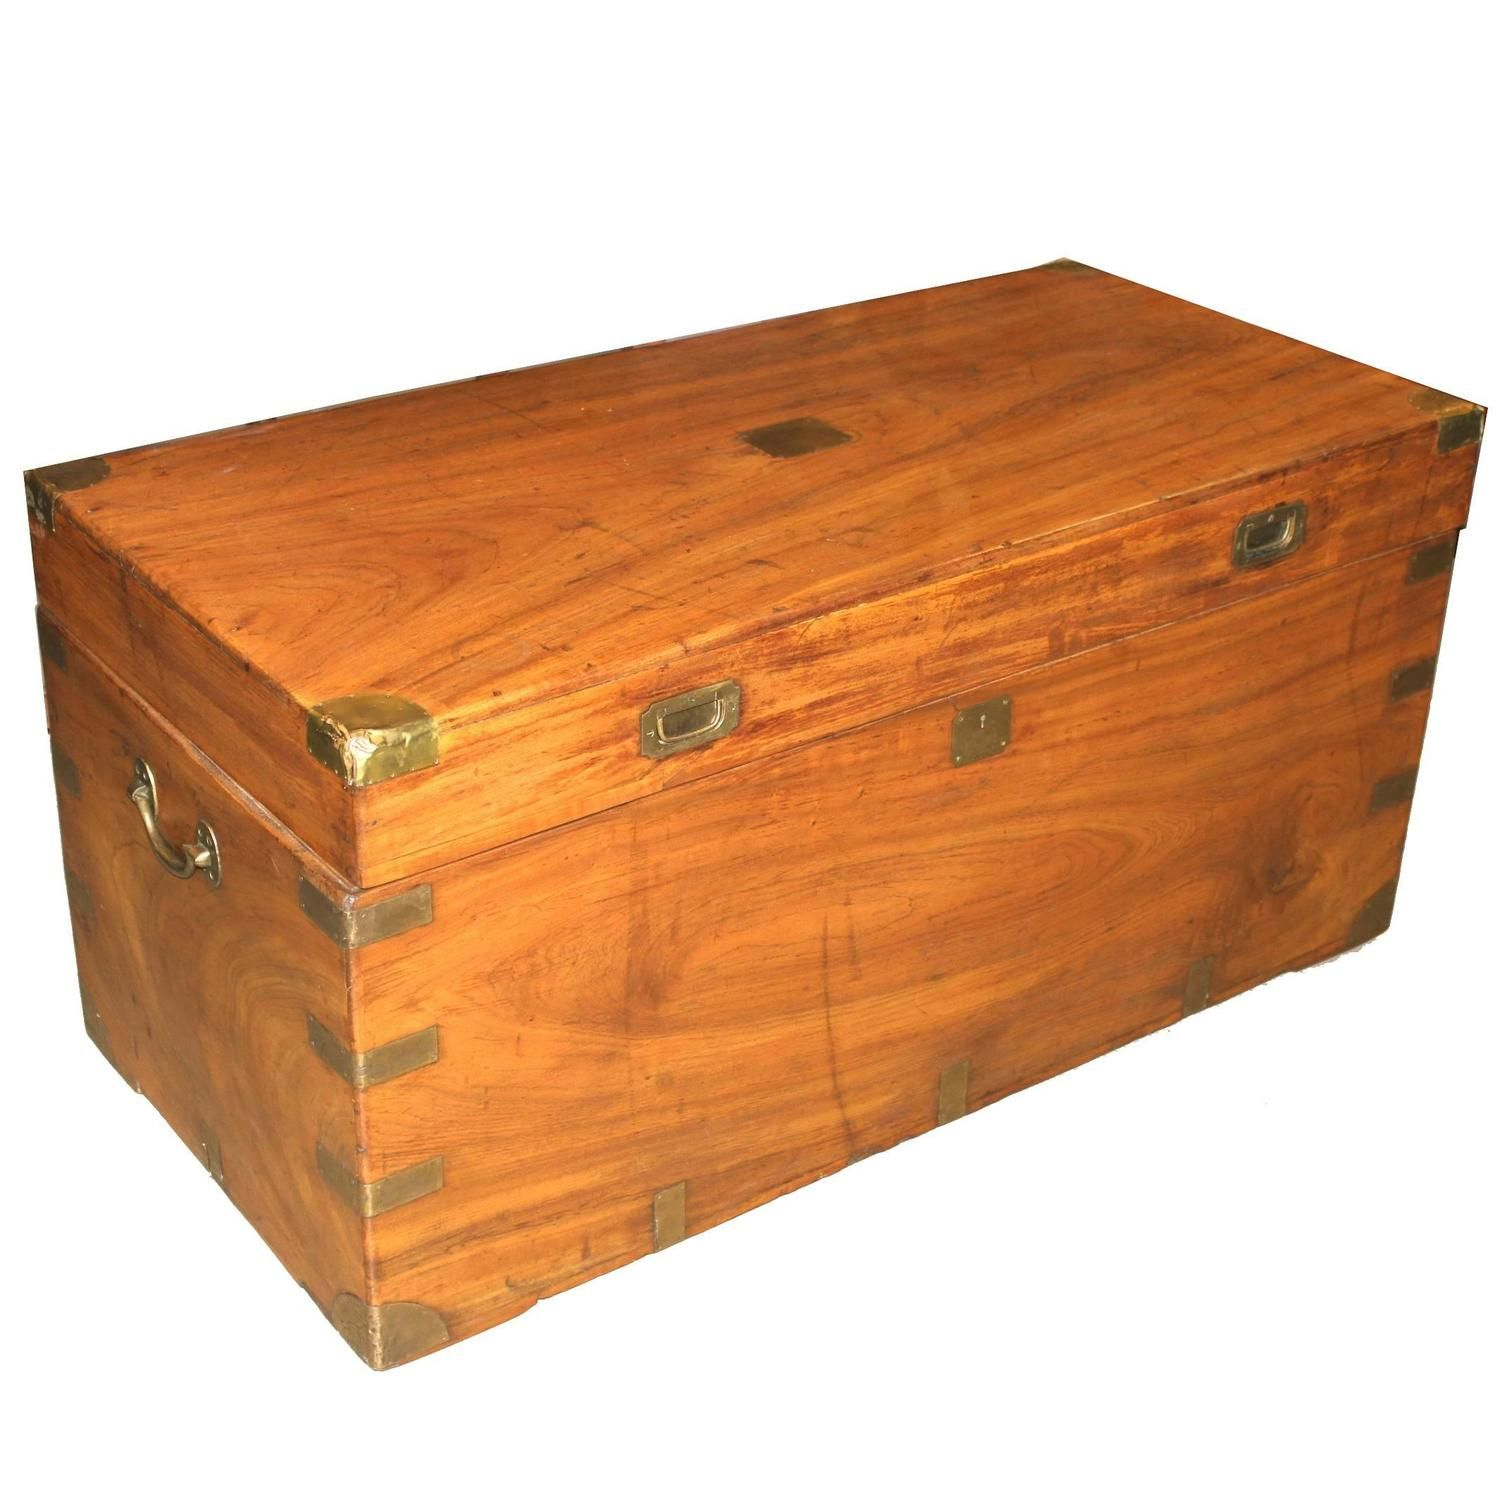 China trade camphor wood trunk or campaign chest circa wood